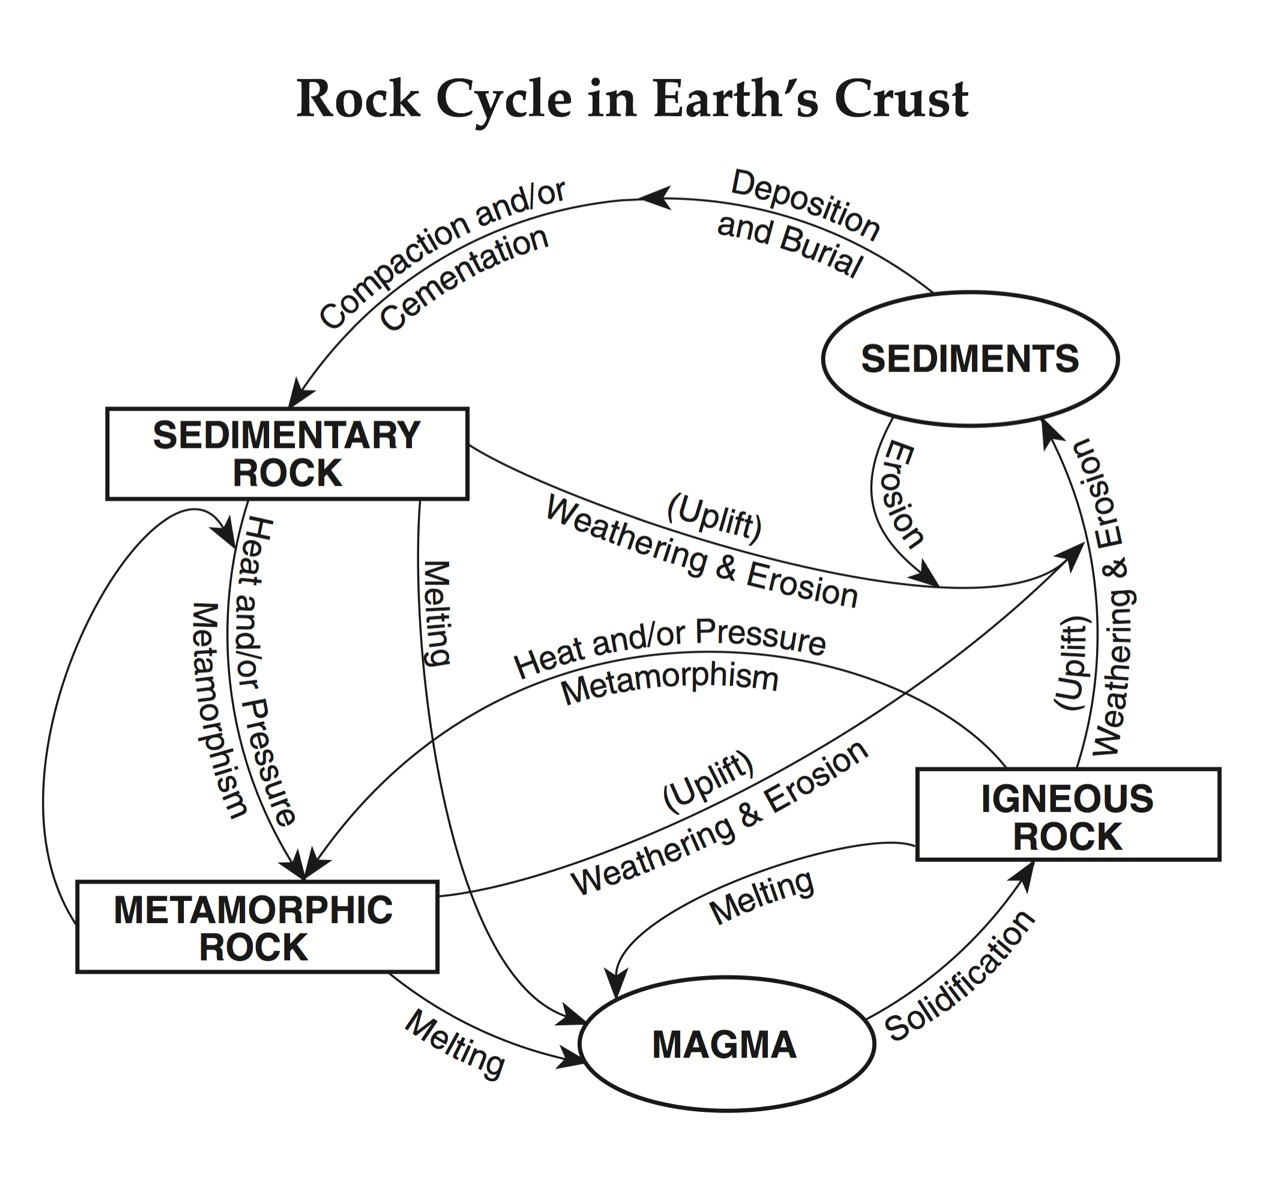 Worksheets The Rock Cycle Worksheets rock cycle vocabulary worksheet free worksheets library download homeschooling hearts